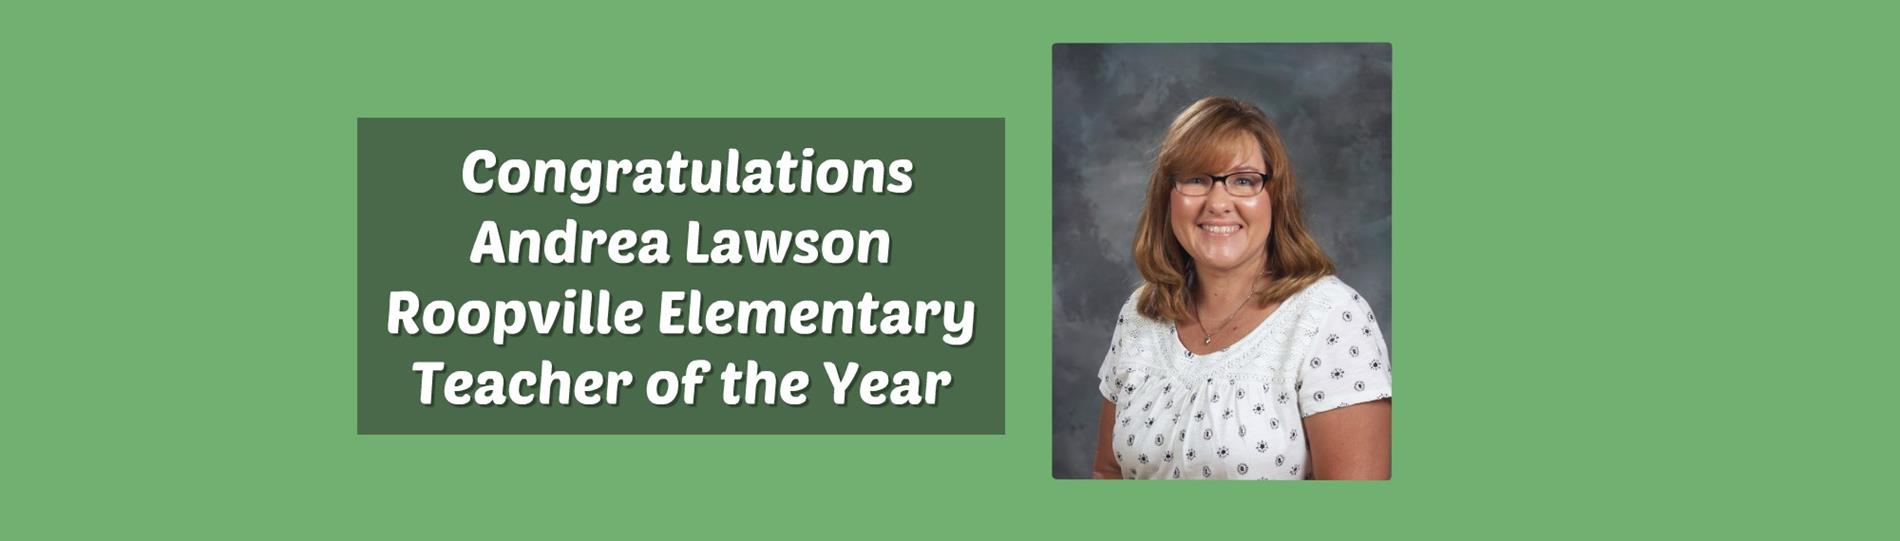 Andrea Lawson Teacher of the Year